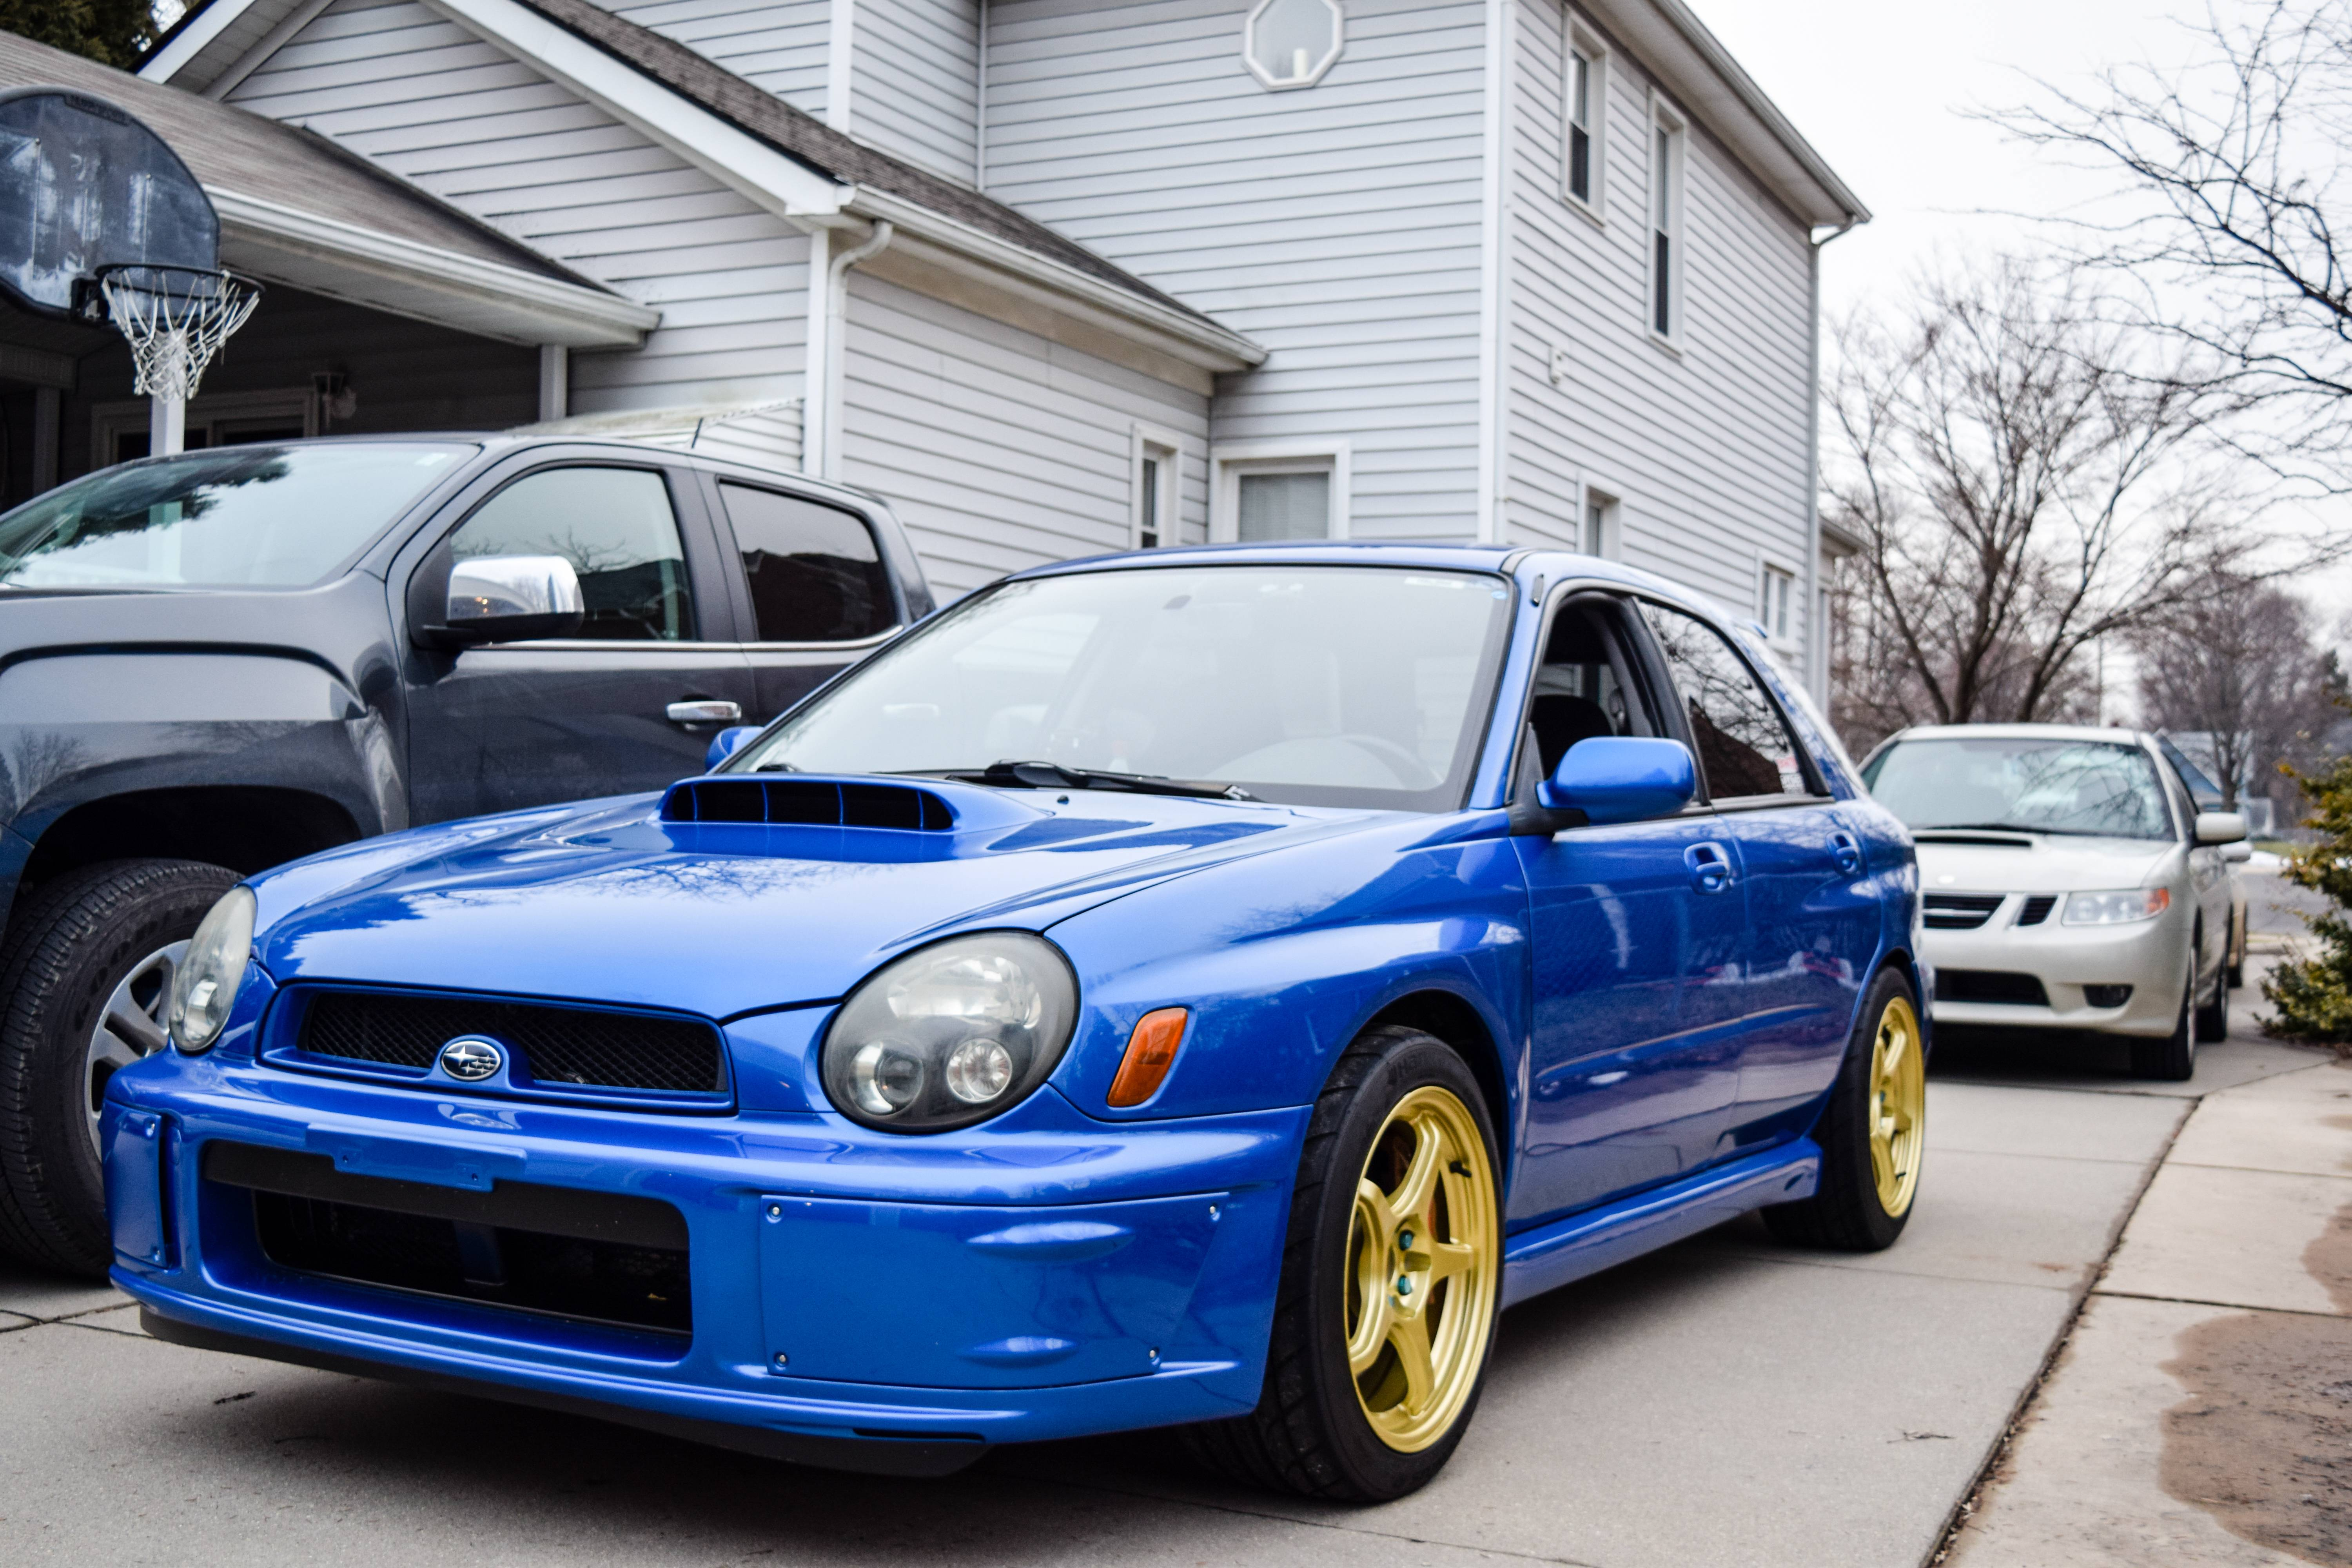 100 subaru bugeye wagon 2002 subaru impreza wrx modified magazine vrd customs avery. Black Bedroom Furniture Sets. Home Design Ideas